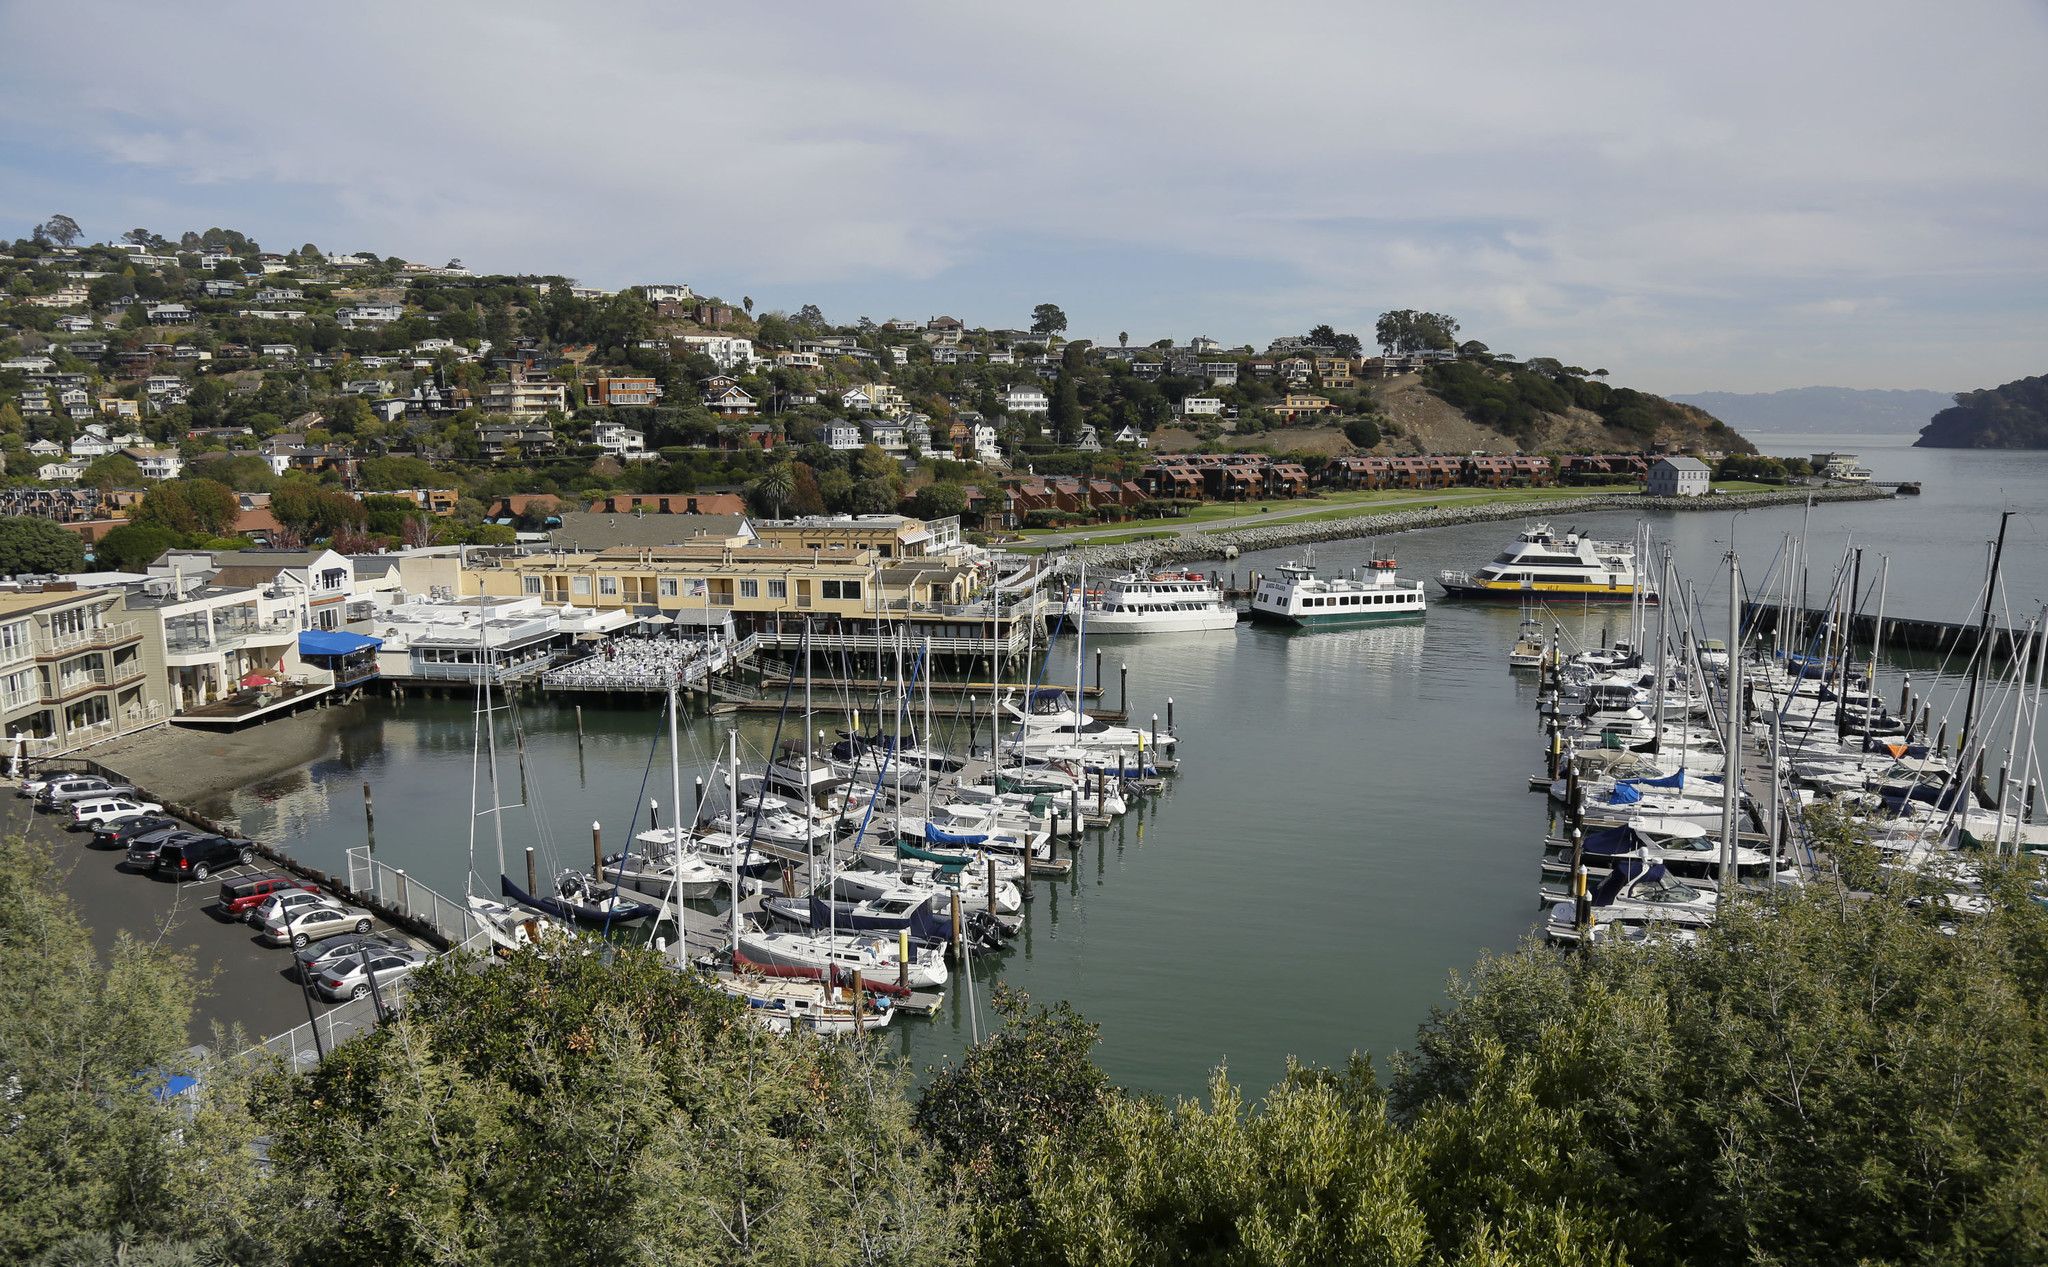 A couple of ferries at top right pull into Tiburon, Calif.